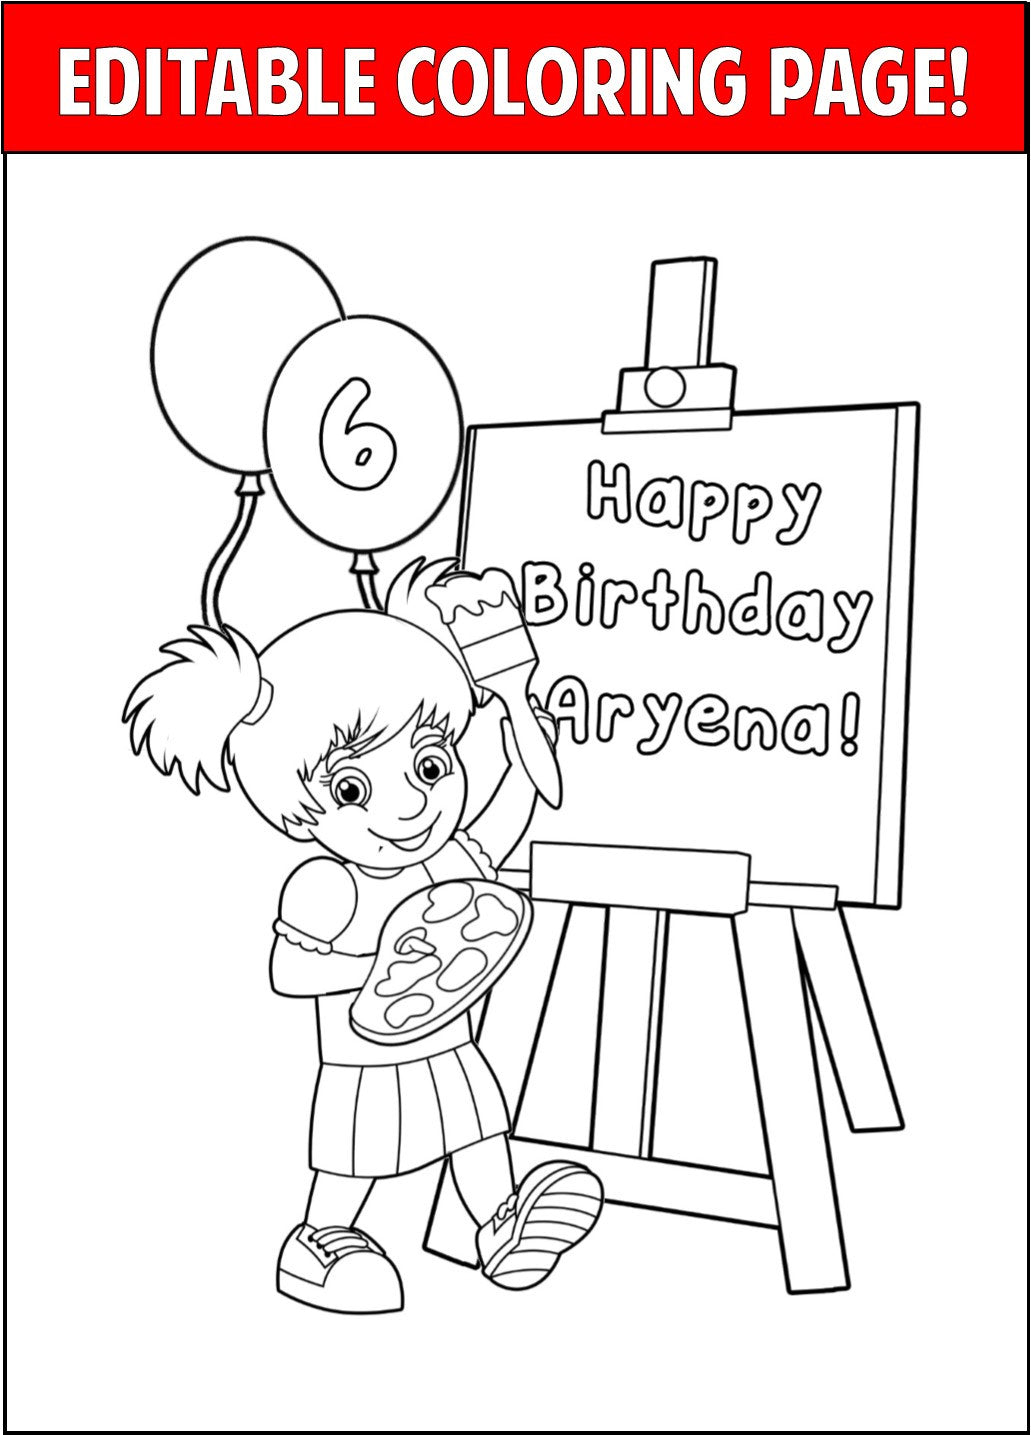 - Art Party Personalized Coloring Page - EDITABLE – PartyGamesPlus